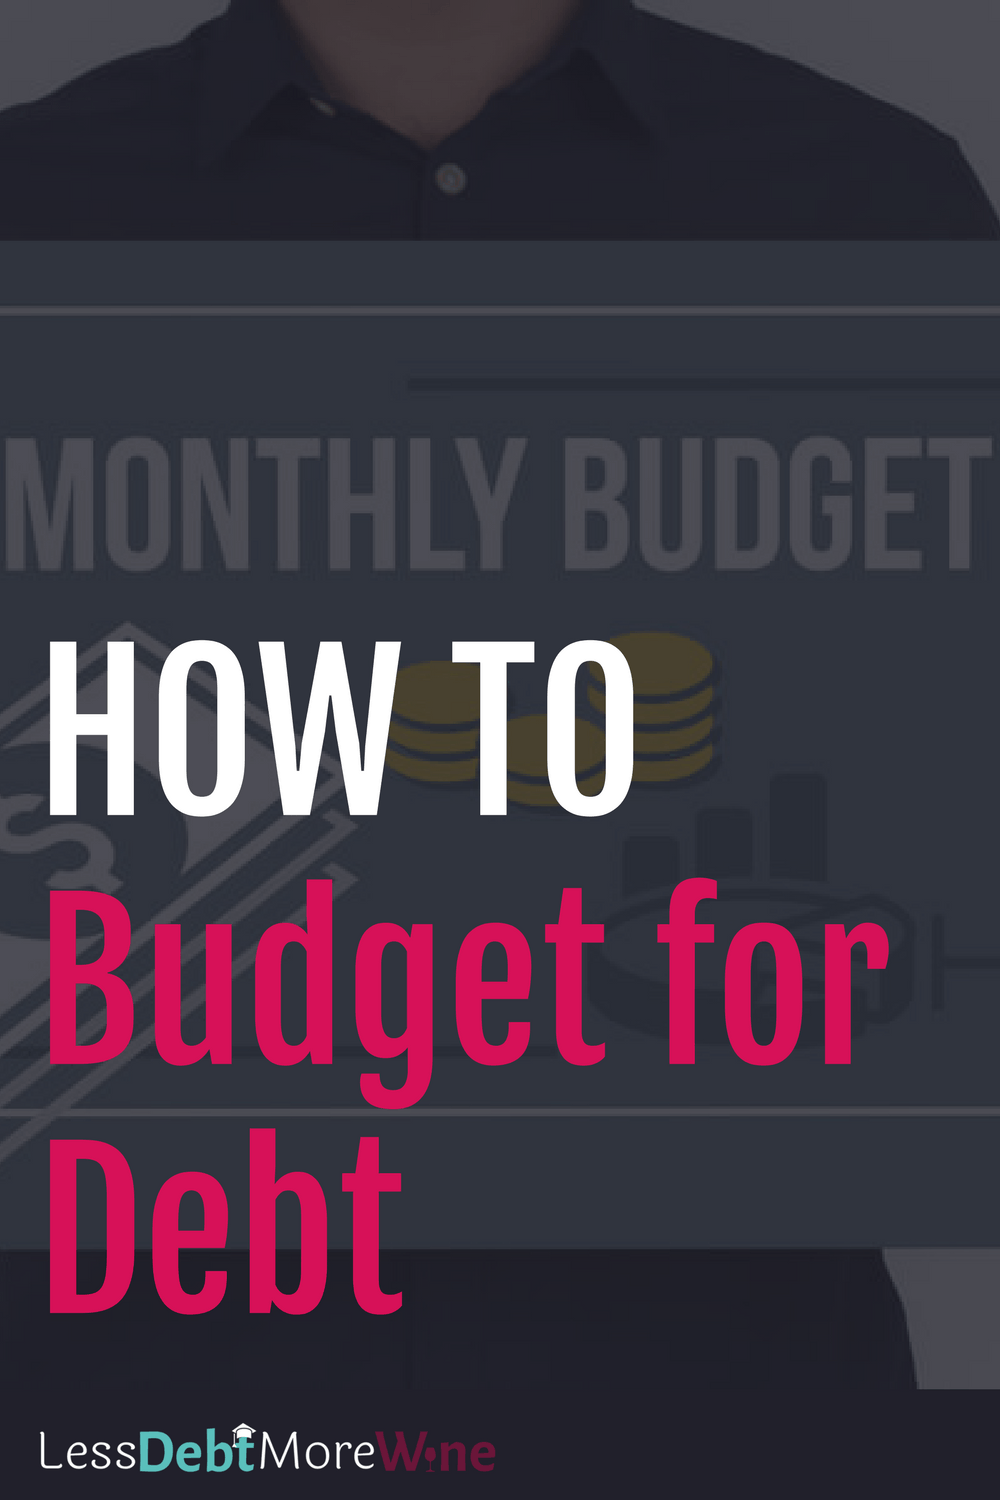 how to budget for debt, budgeting for debt takes a certain kind of skill and planning. pay off debt | debt repayment | how to pay off debt | debt payoff